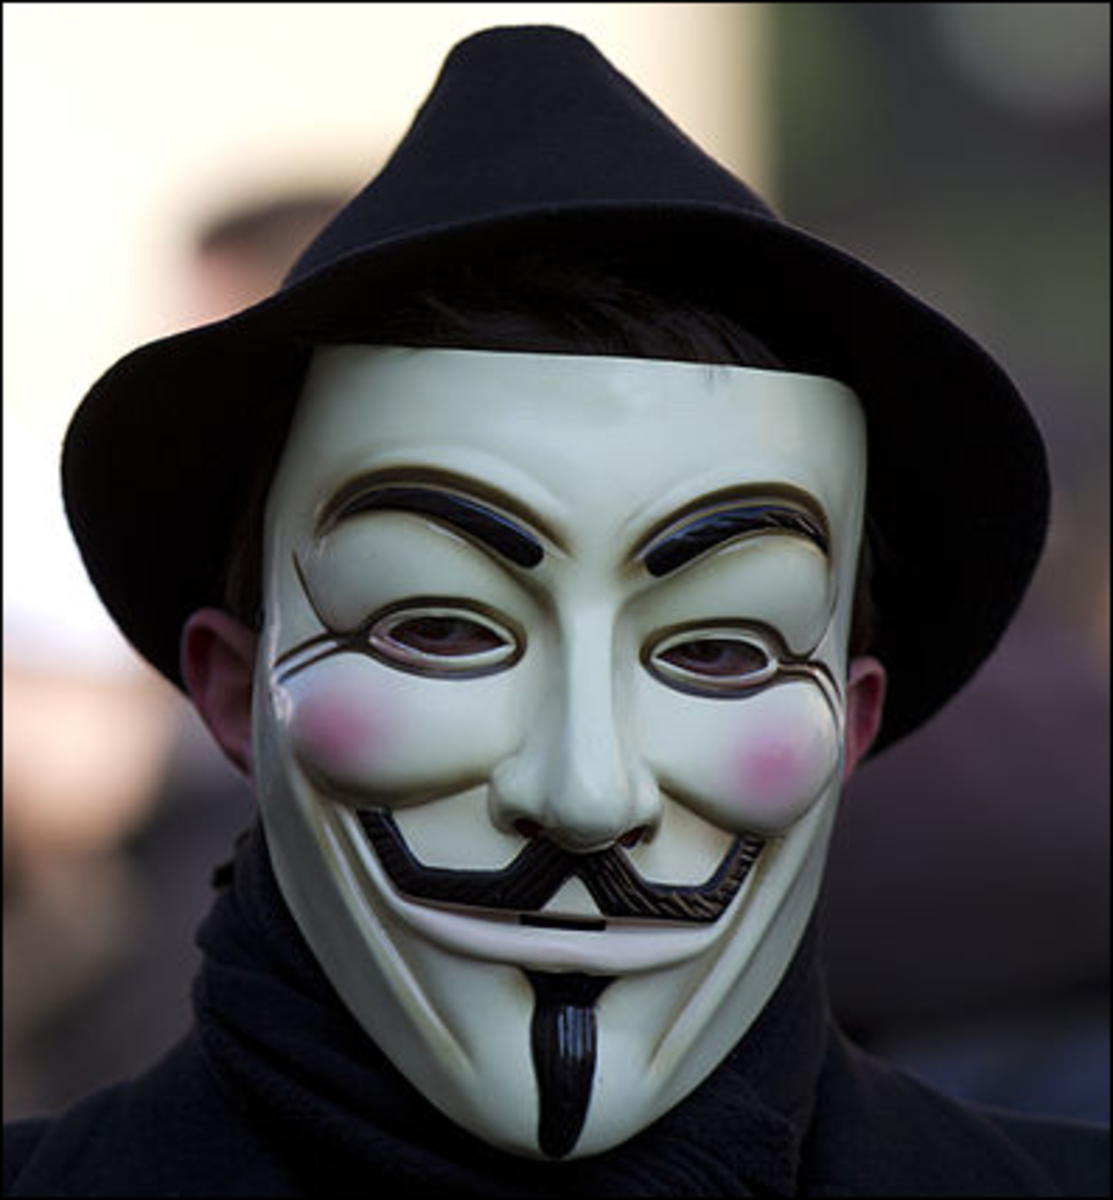 'Black hat' hacker?